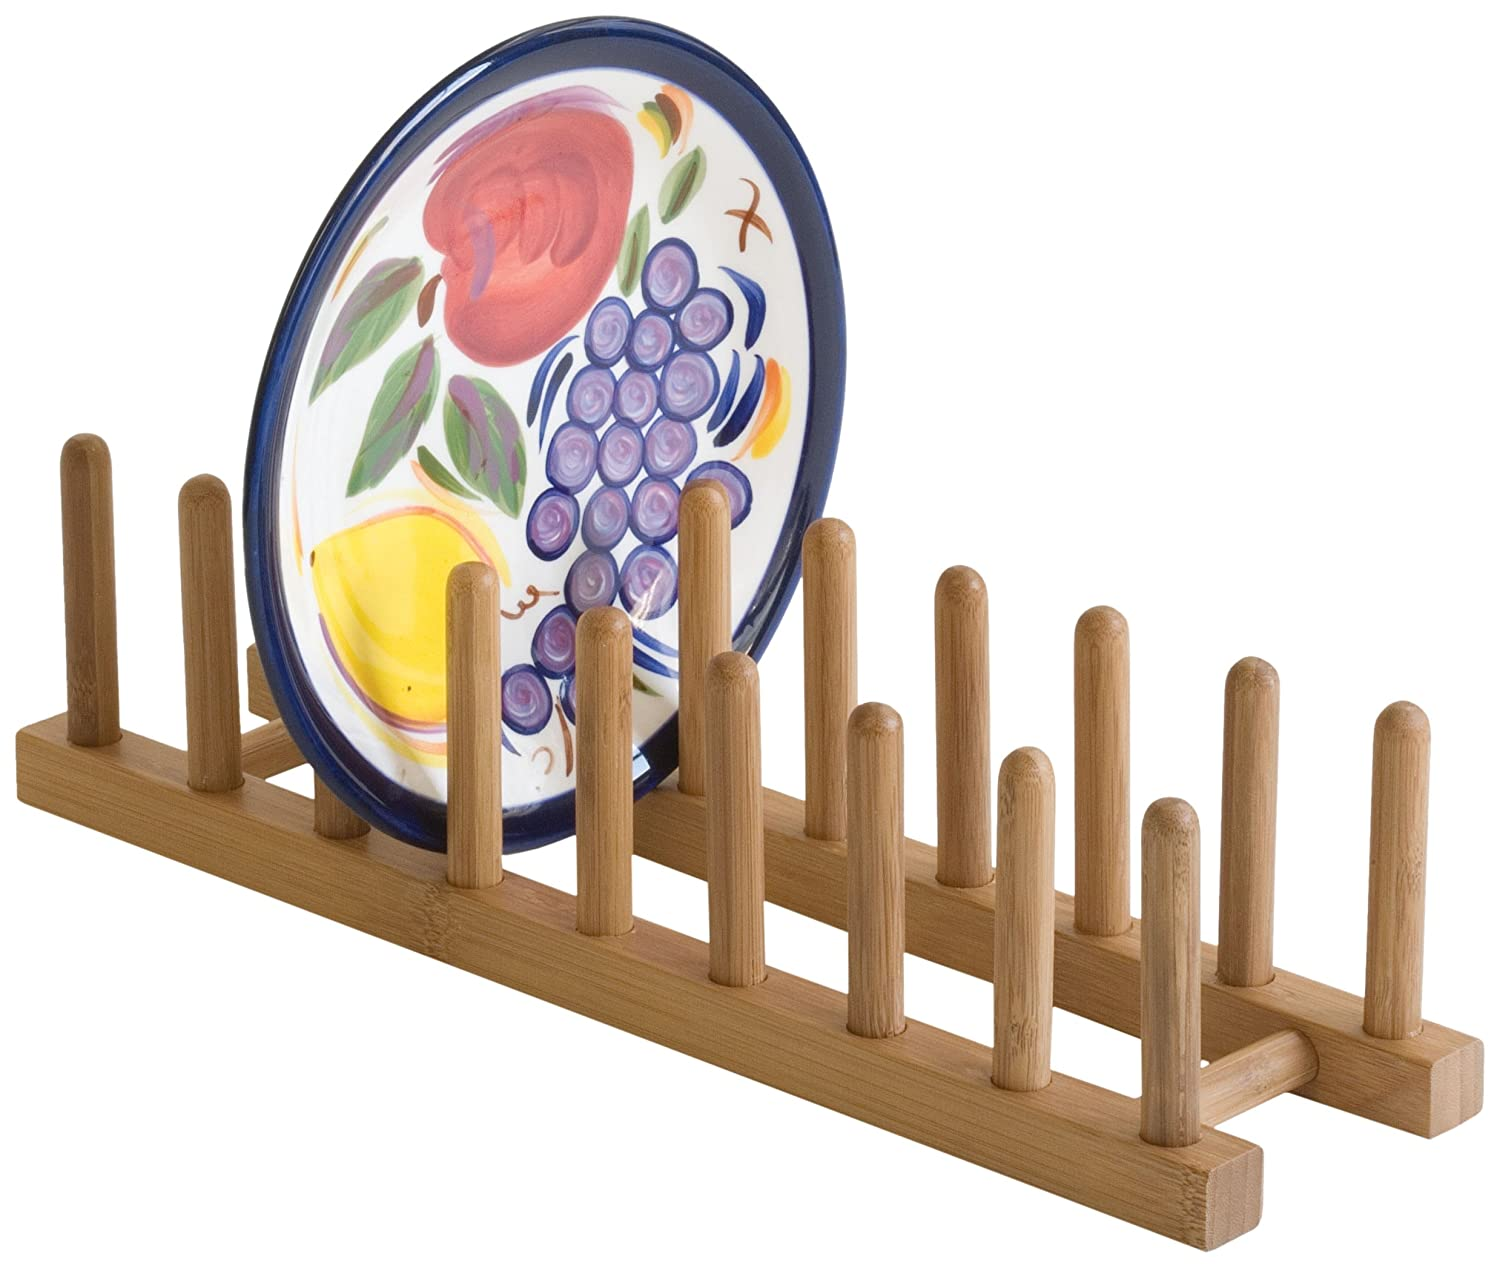 Amazon.com: Lipper International - Soporte de madera de ...